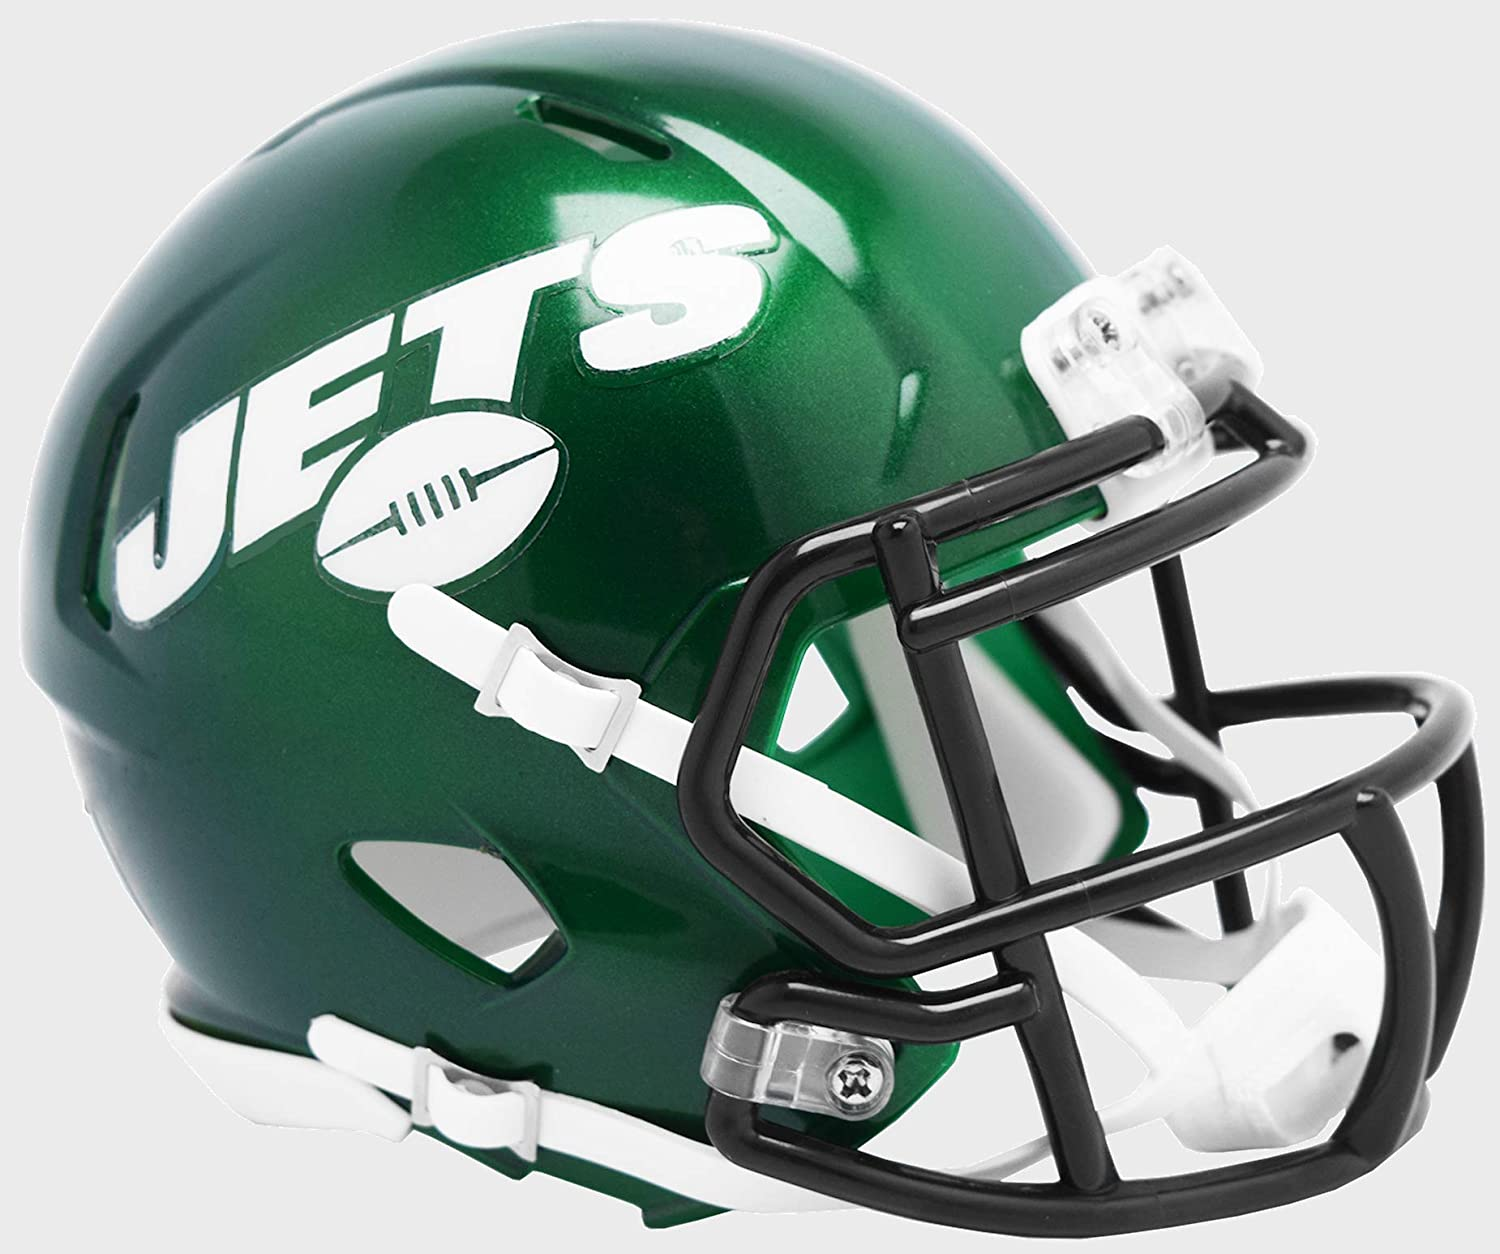 Riddell NFL New York Jets NFL Speed Mini Football Helmet